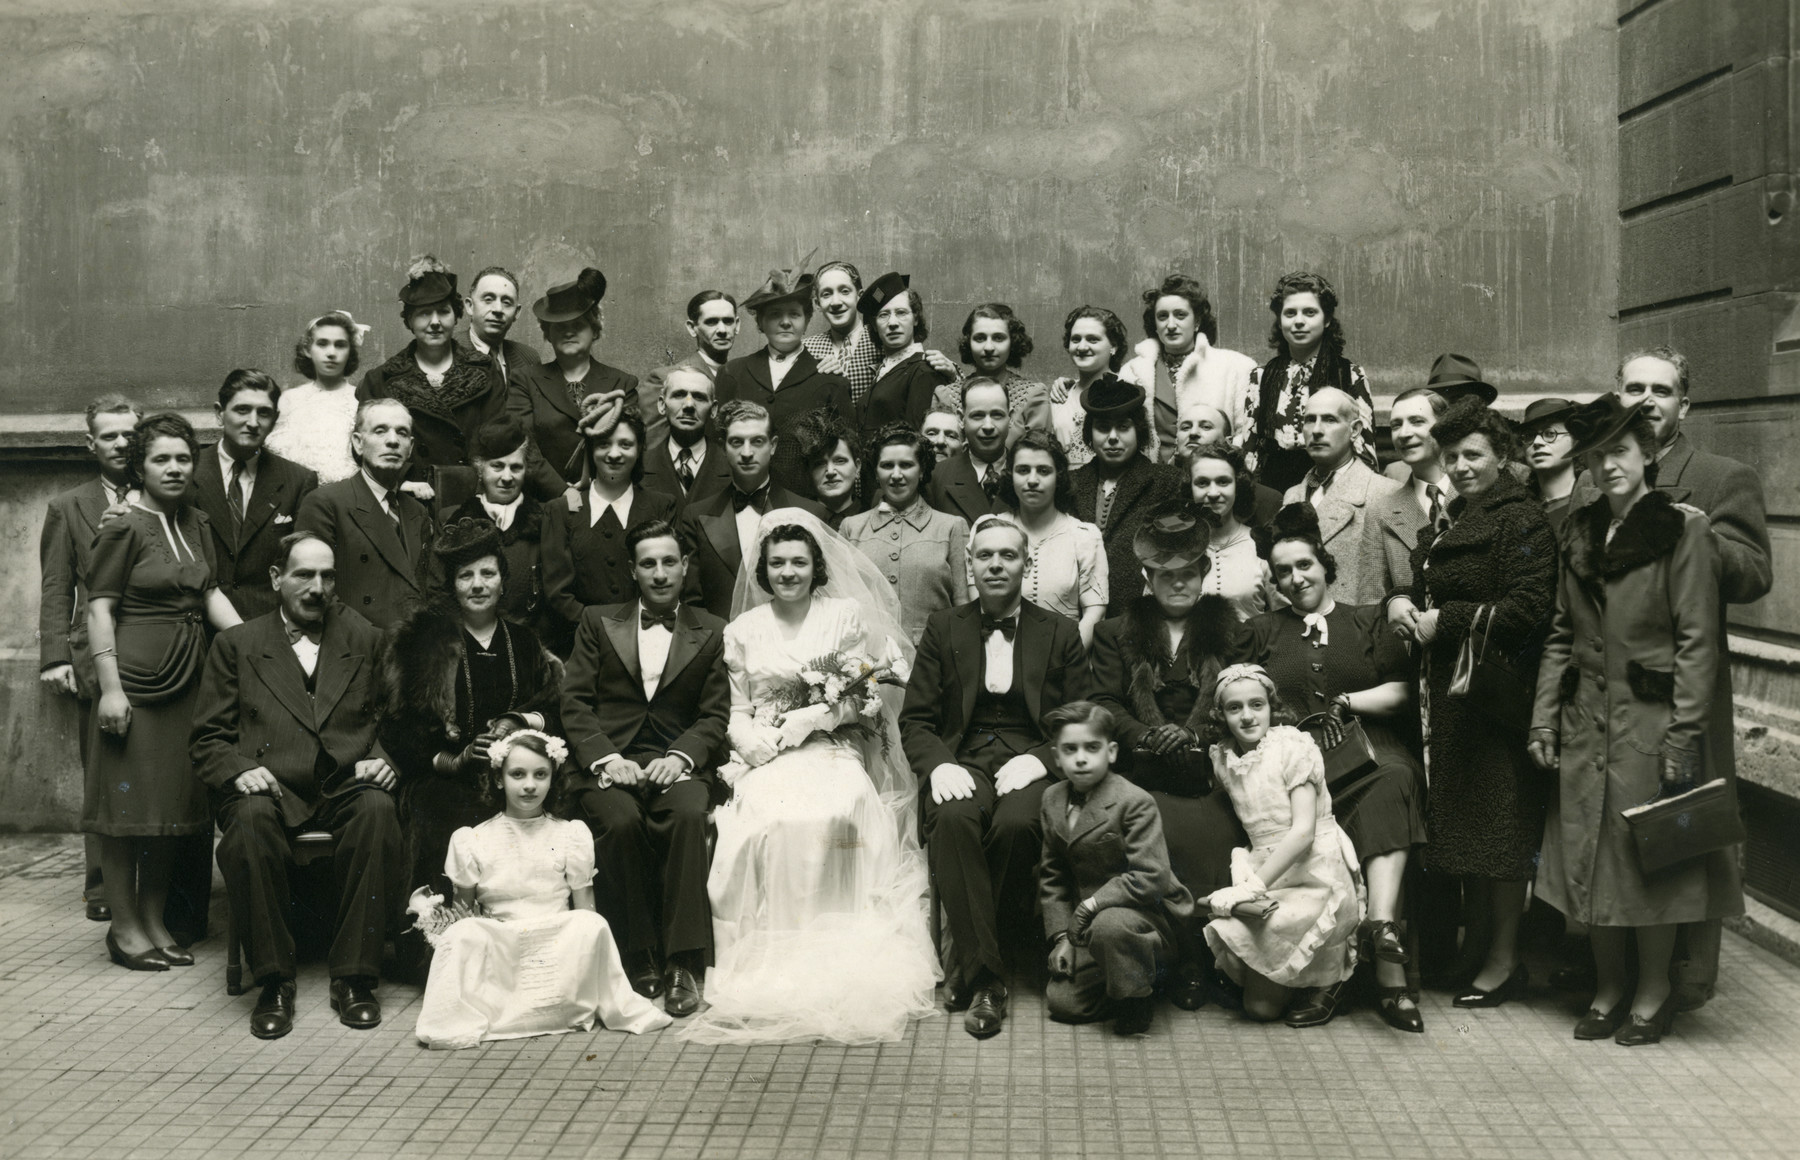 Wedding portrait of Rachelle Romano and Yom Tov Chavez.  Pictured in the center isthe bride Rachelle Romano next to her father Shimon Romano. His wife Regine Romano is to his right.  Camille Romano is seated in a white dress on the left.  Standing to the left of Shimon are his daughters Esther and Julliette.  Another sister Suzanne is standing in the back row, fourth from the right.  Joef Emir is in the back row center.